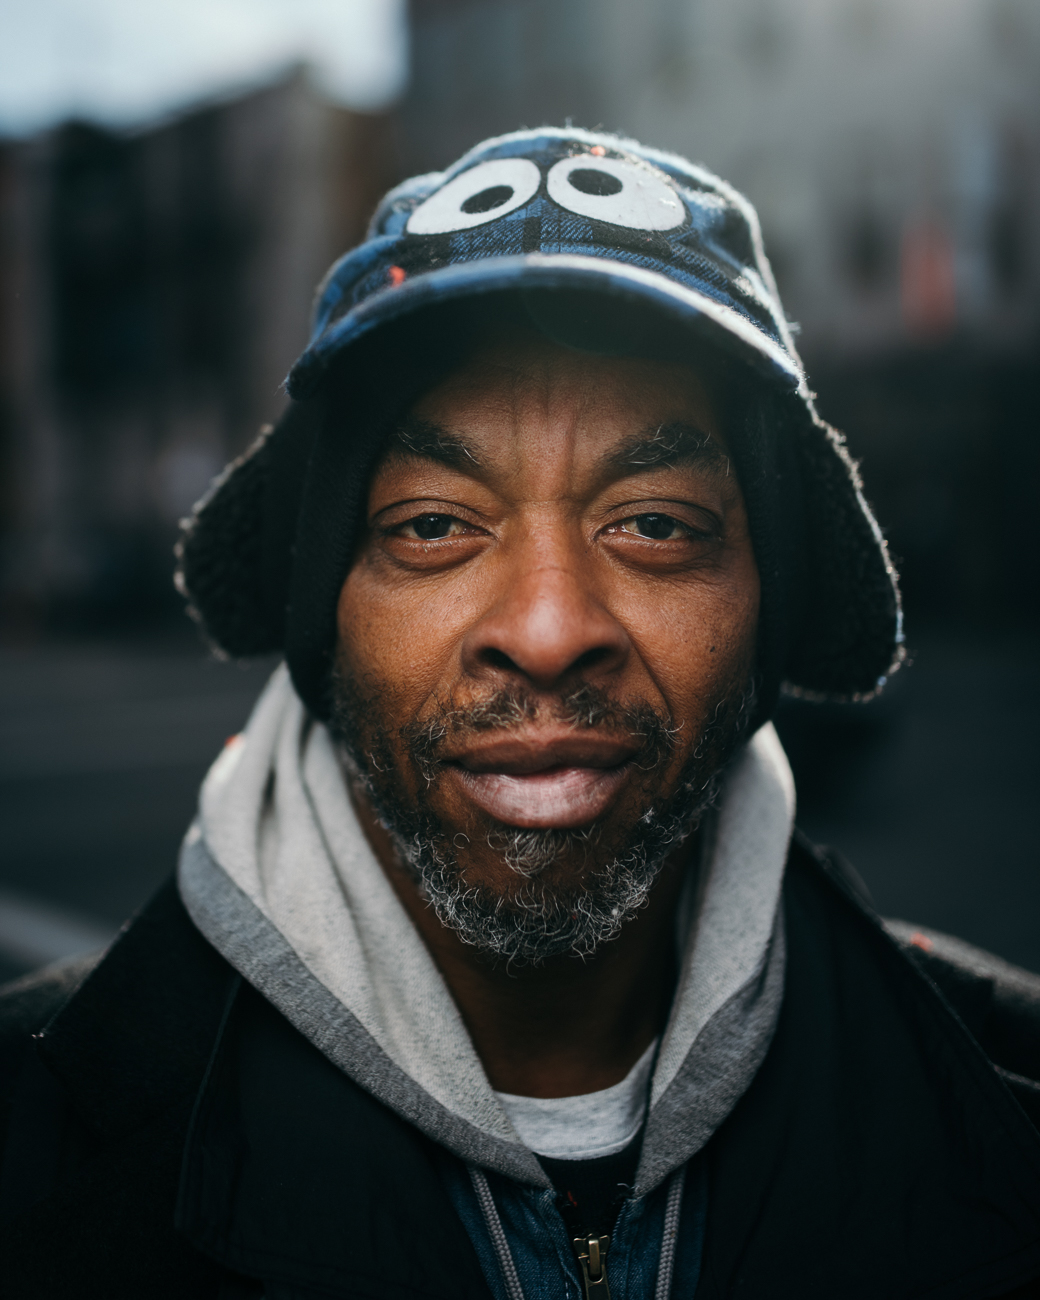 """Cincinnati, like most major cities, requires a permit to use a tripod or light stand on the ground. I decided to get around this rule by creating a device that allows me to carry my light on my back. I use it to capture very dramatic and unique portraits of people out on the street. You can follow the hashtag #gogogadgetoctobox to see some of the portraits I have taken."" / Image: Brendan Burkett // Published: 7.29.19"